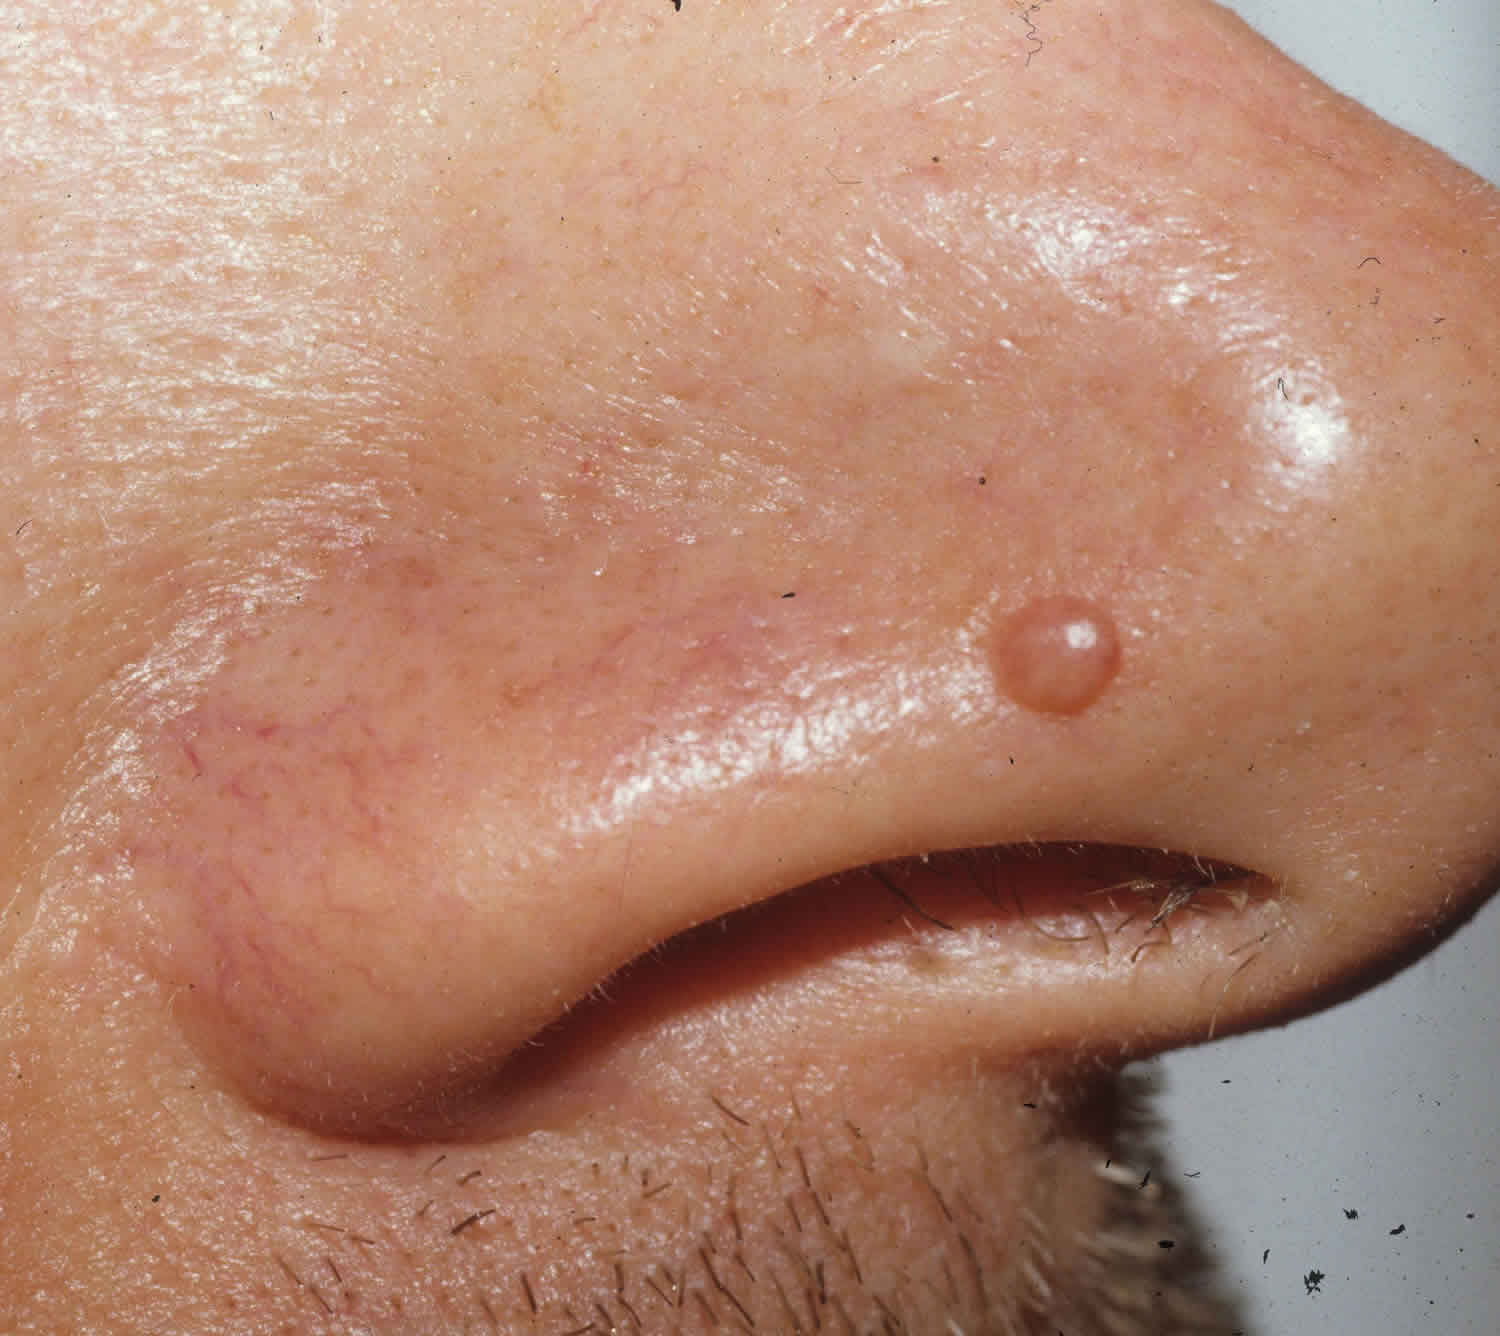 Papule or fibrous papules on nose causes, diagnosis